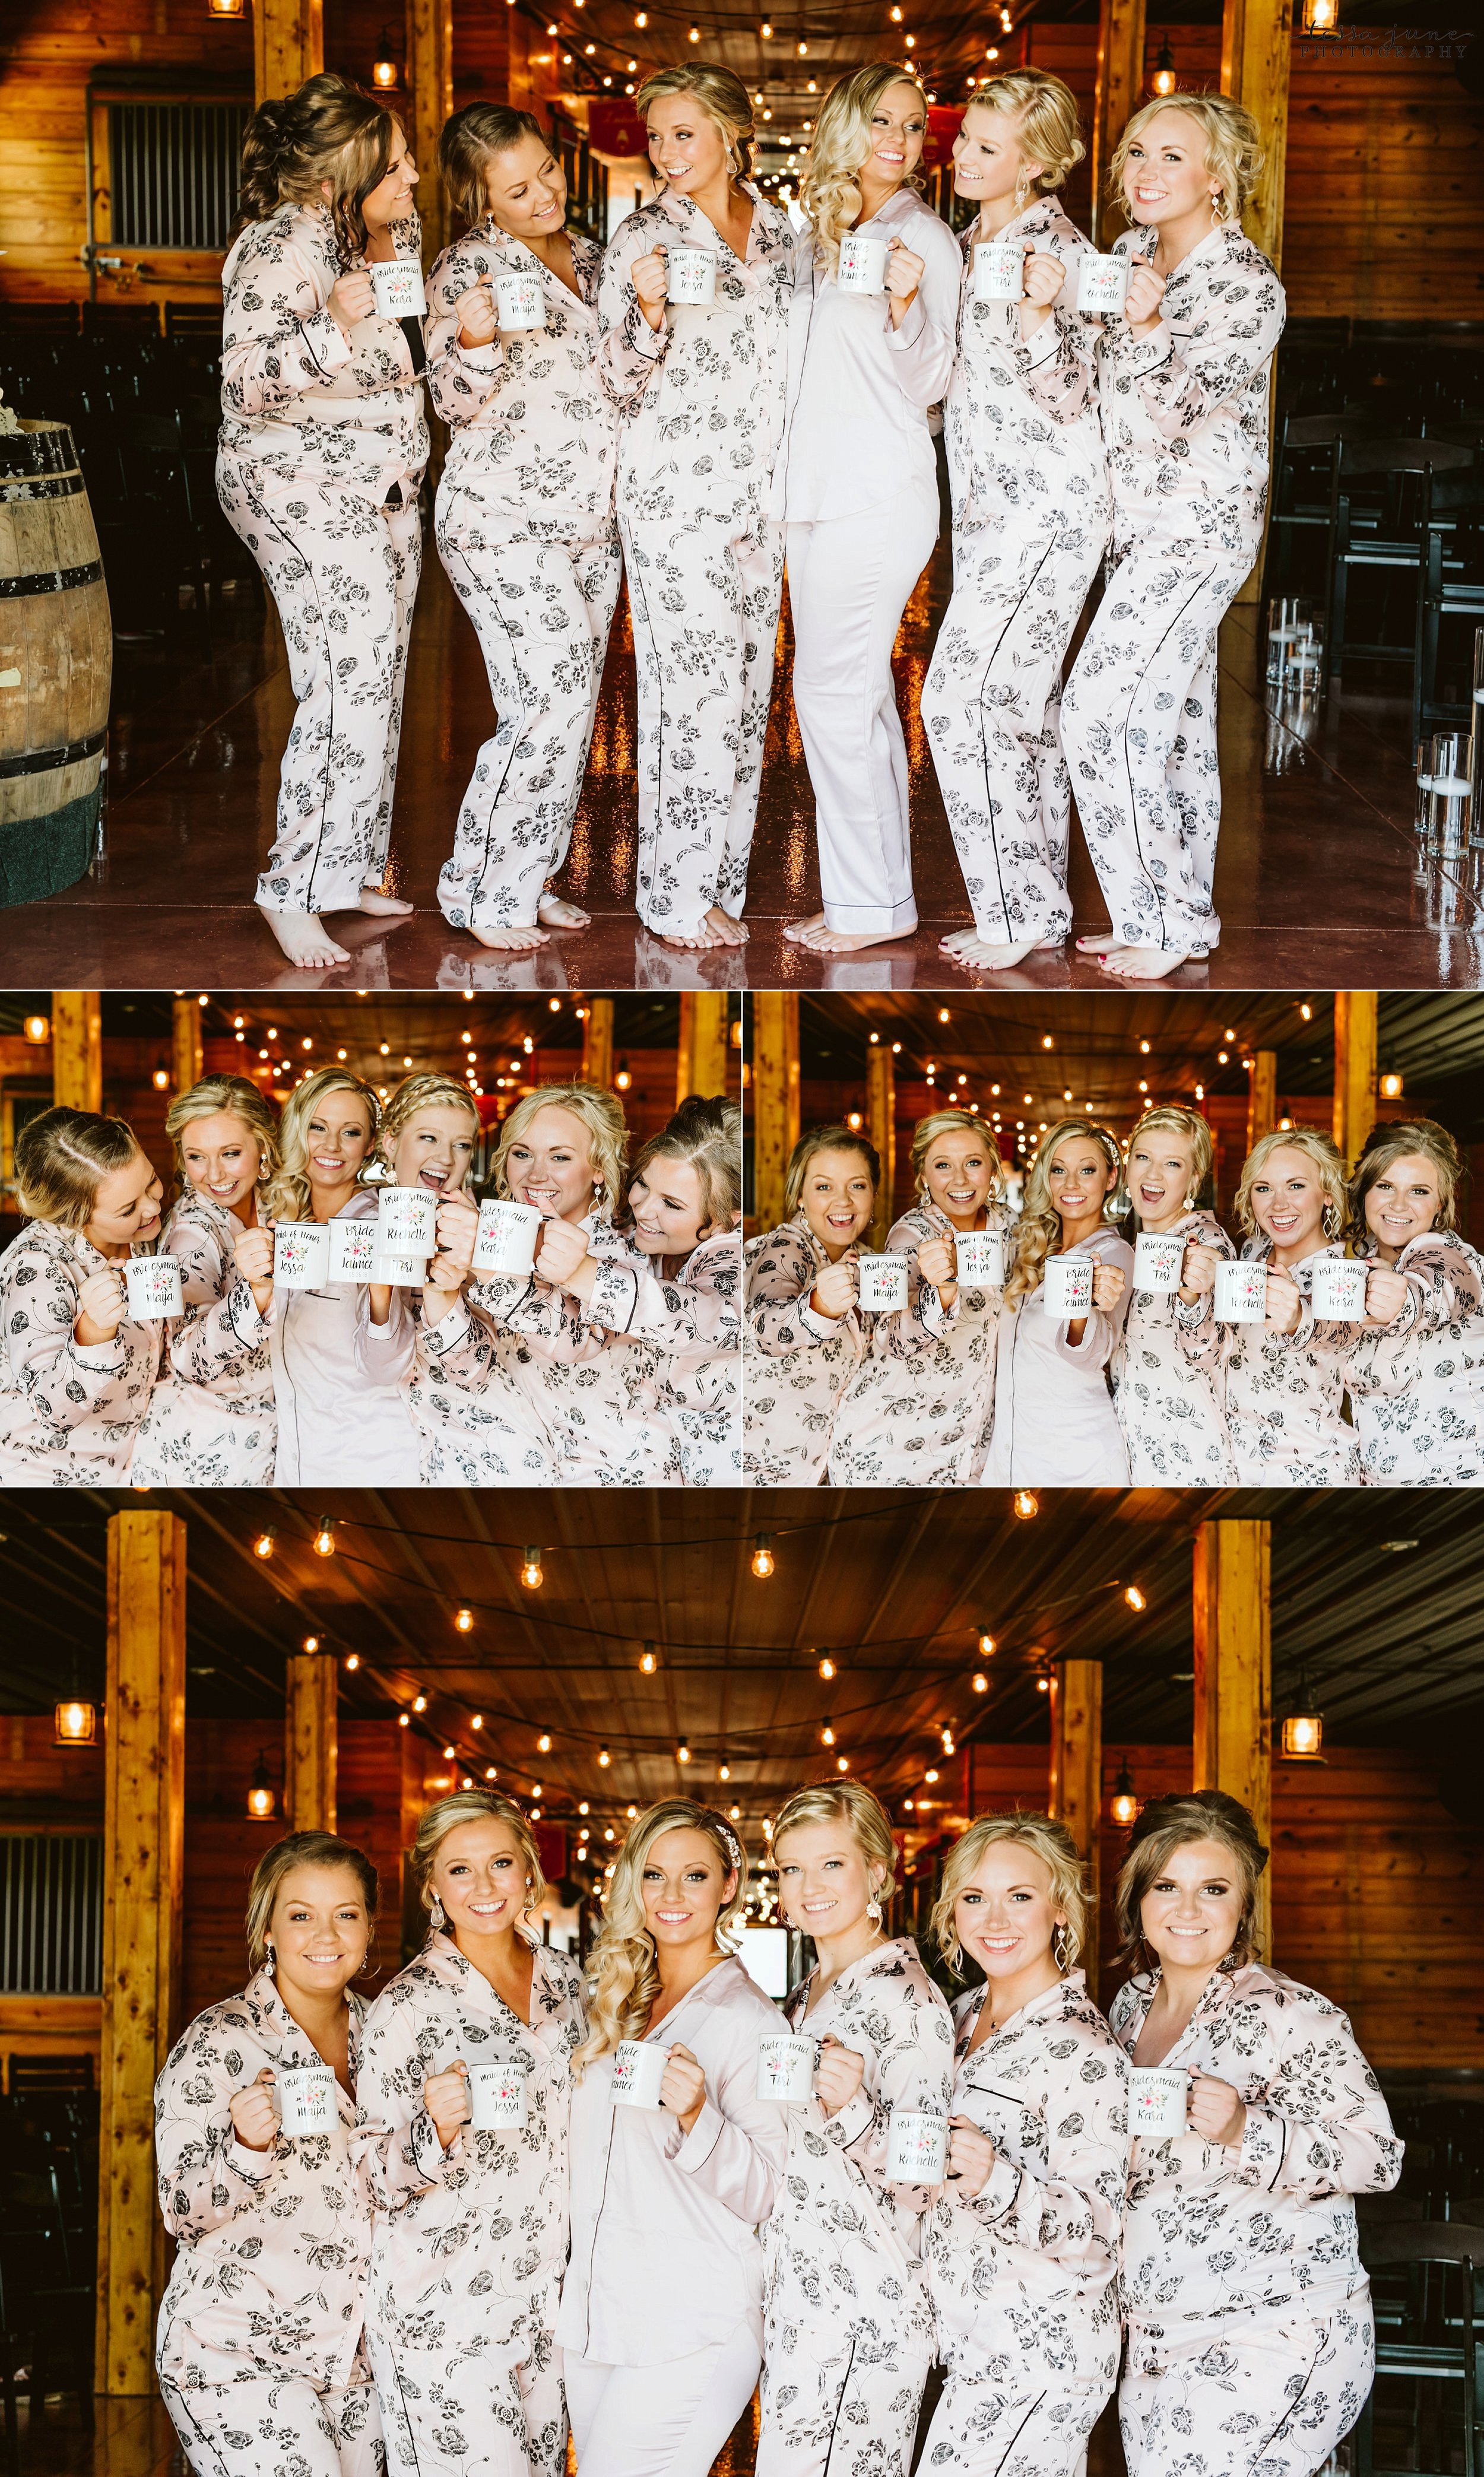 carlos-creek-winery-wedding-alexandria-minnesota-glam-elegant-floral-10.jpg